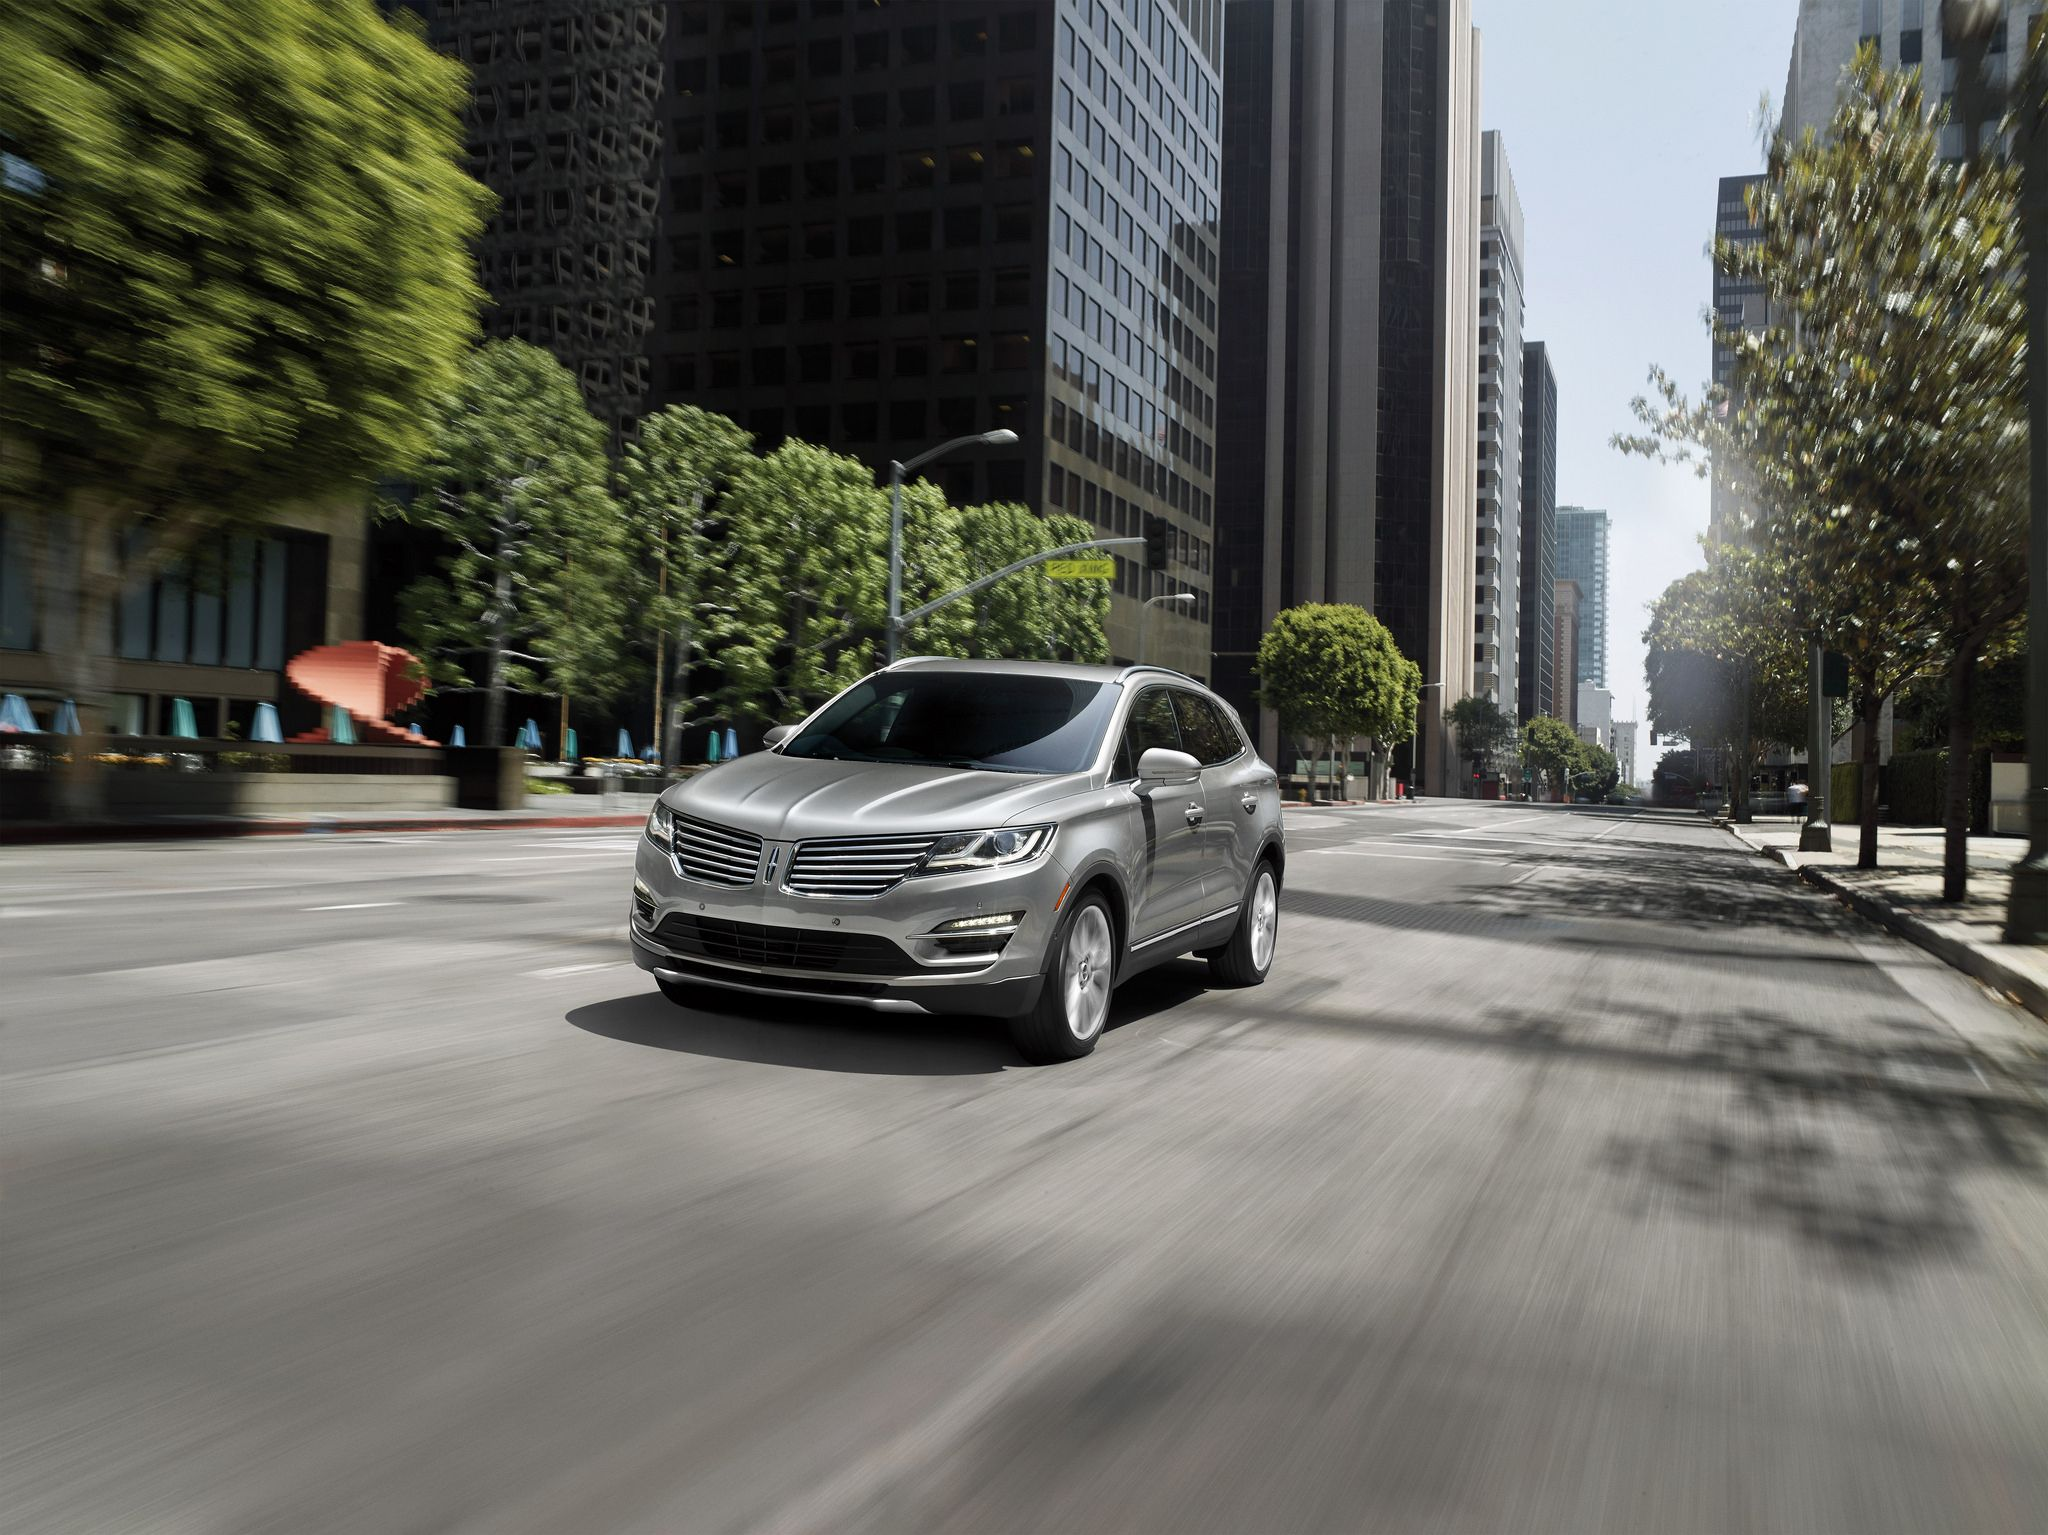 Our favorite features in the new 2018 Lincoln MKC, available at West Point Lincoln.